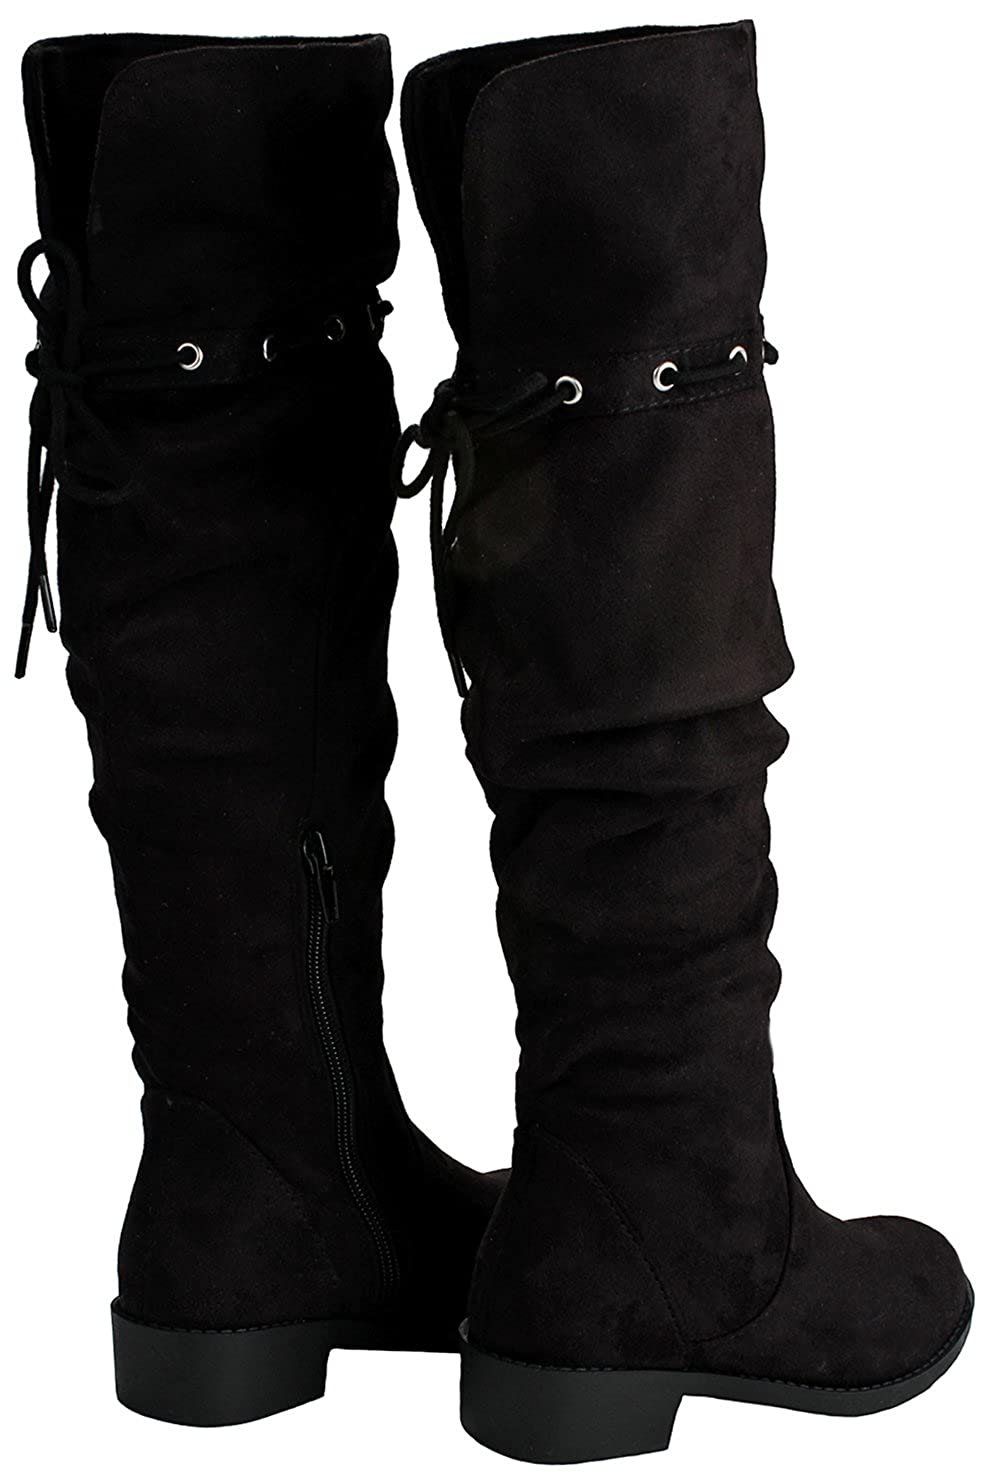 JJF Shoes Kids Girls Slouchy Drawstring Lace-Up Cuff Round Toe Faux Suede Over The Knee Flat Boots